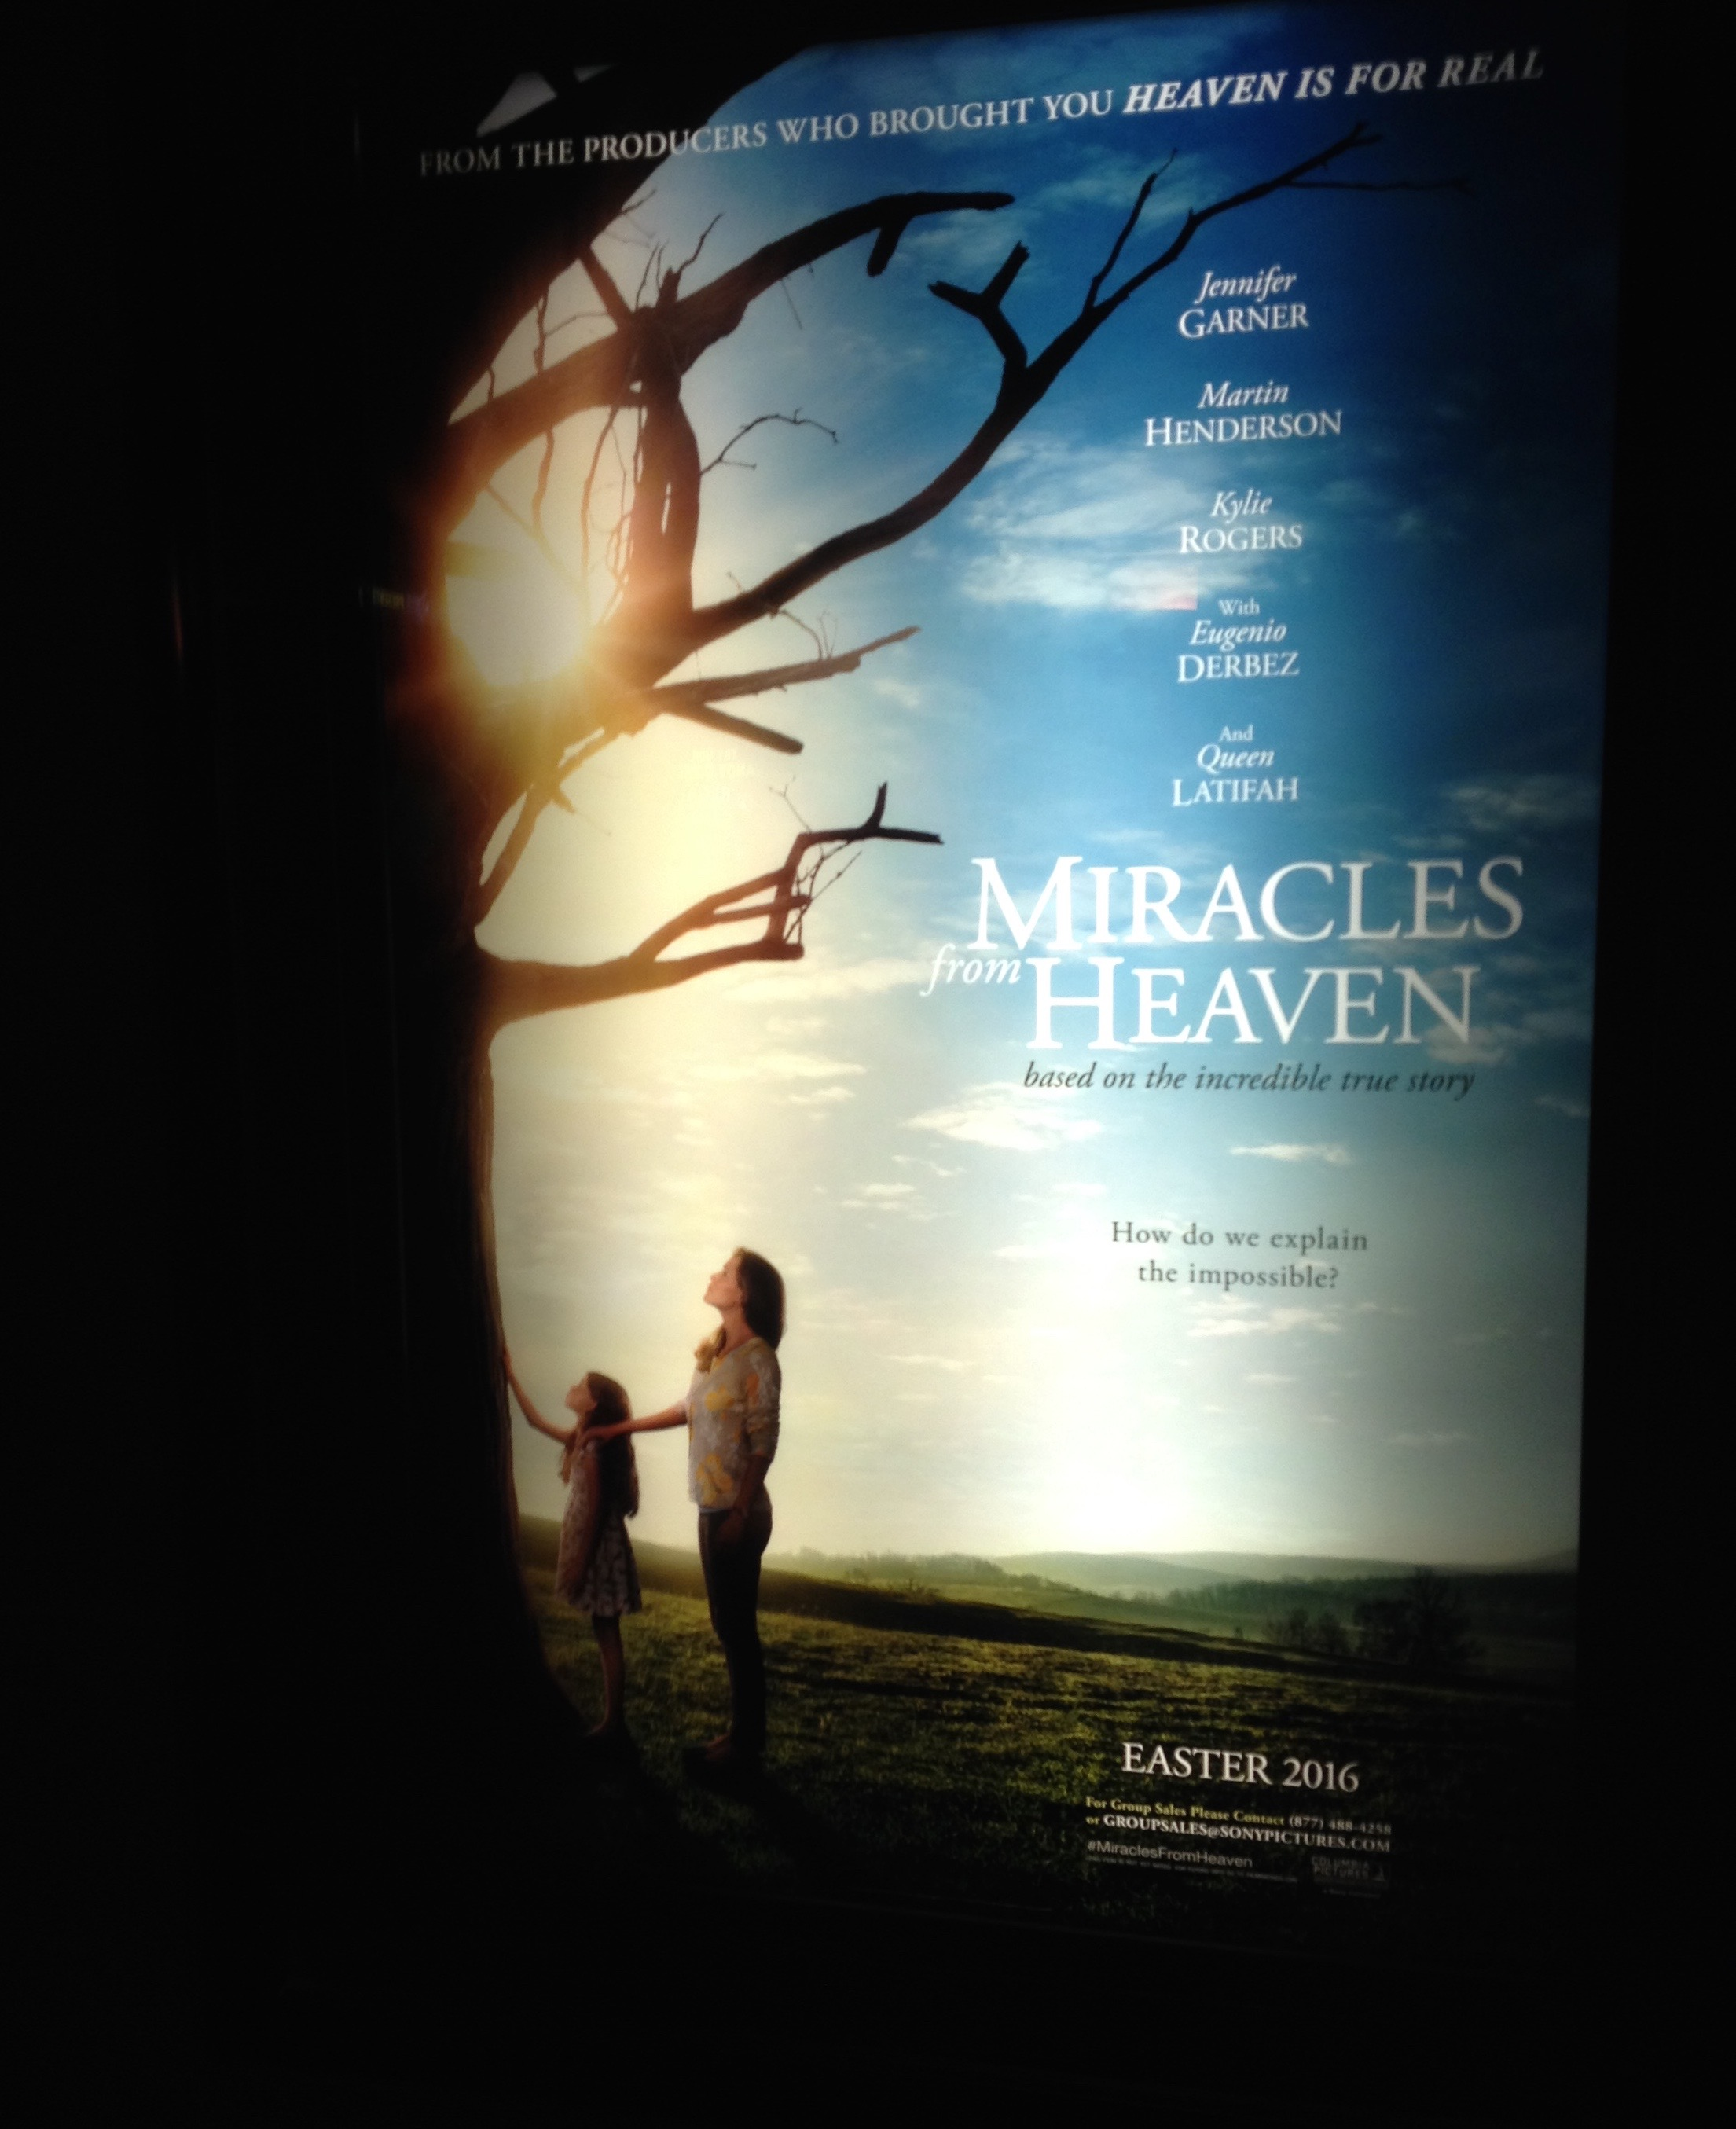 Miracles from Heaven: Film Review by The He Said She Said Experience